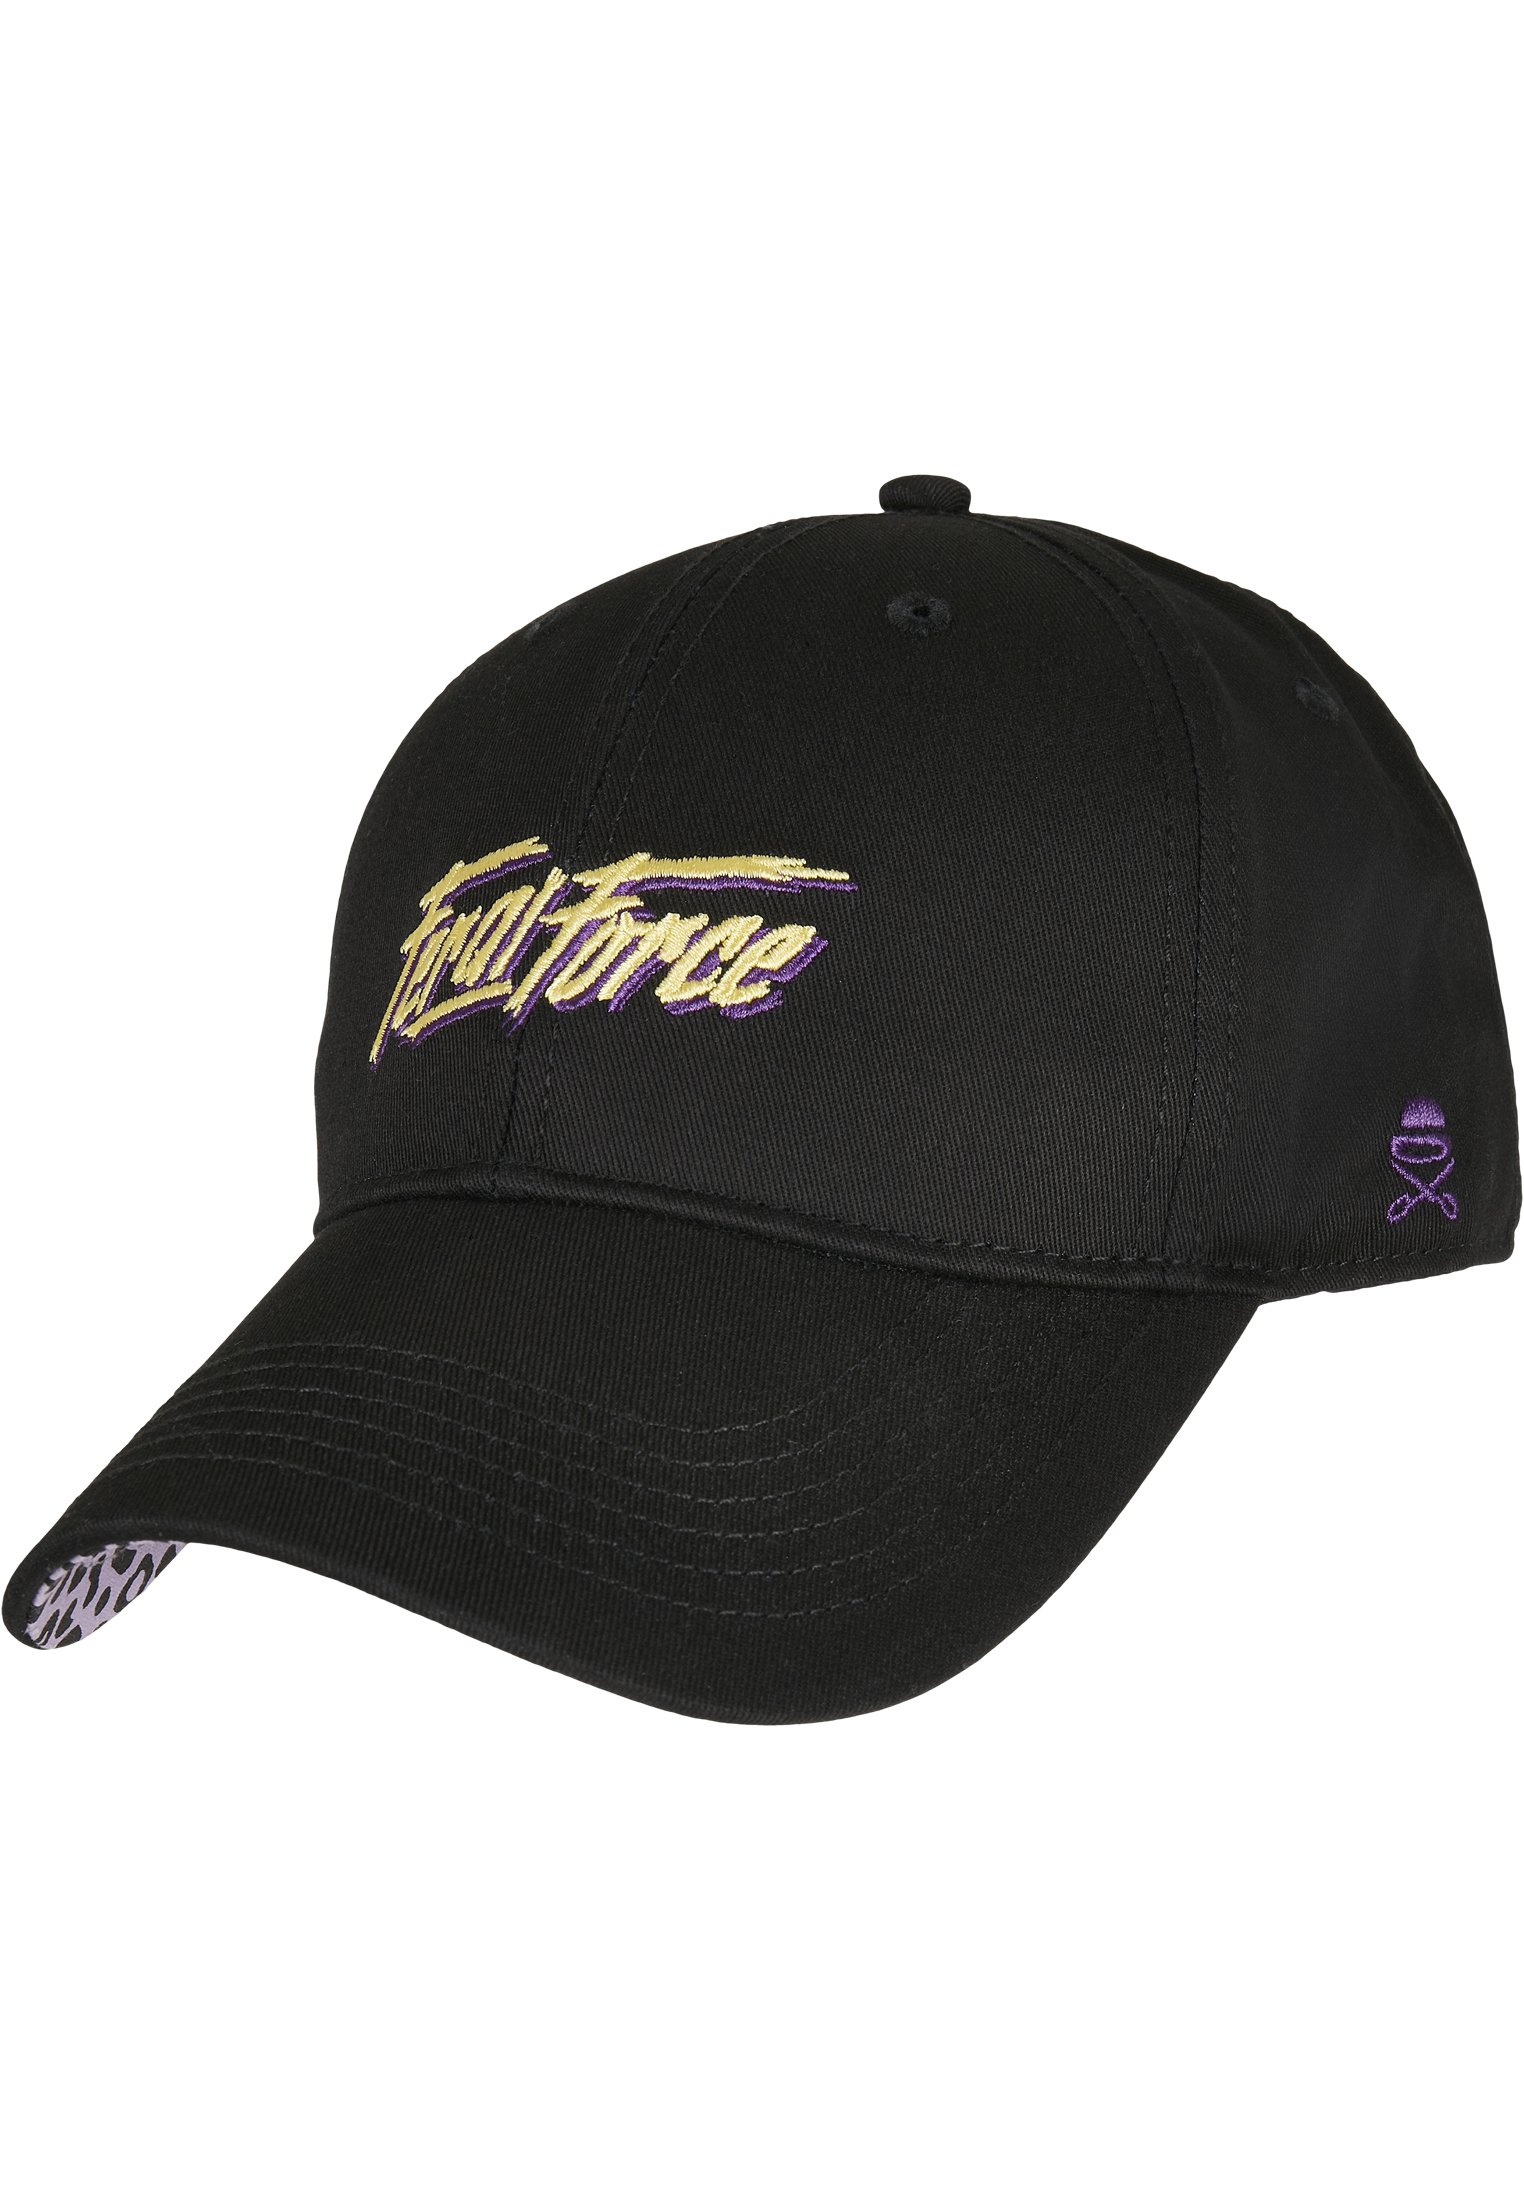 Homme FERAL FORCE - Casquette